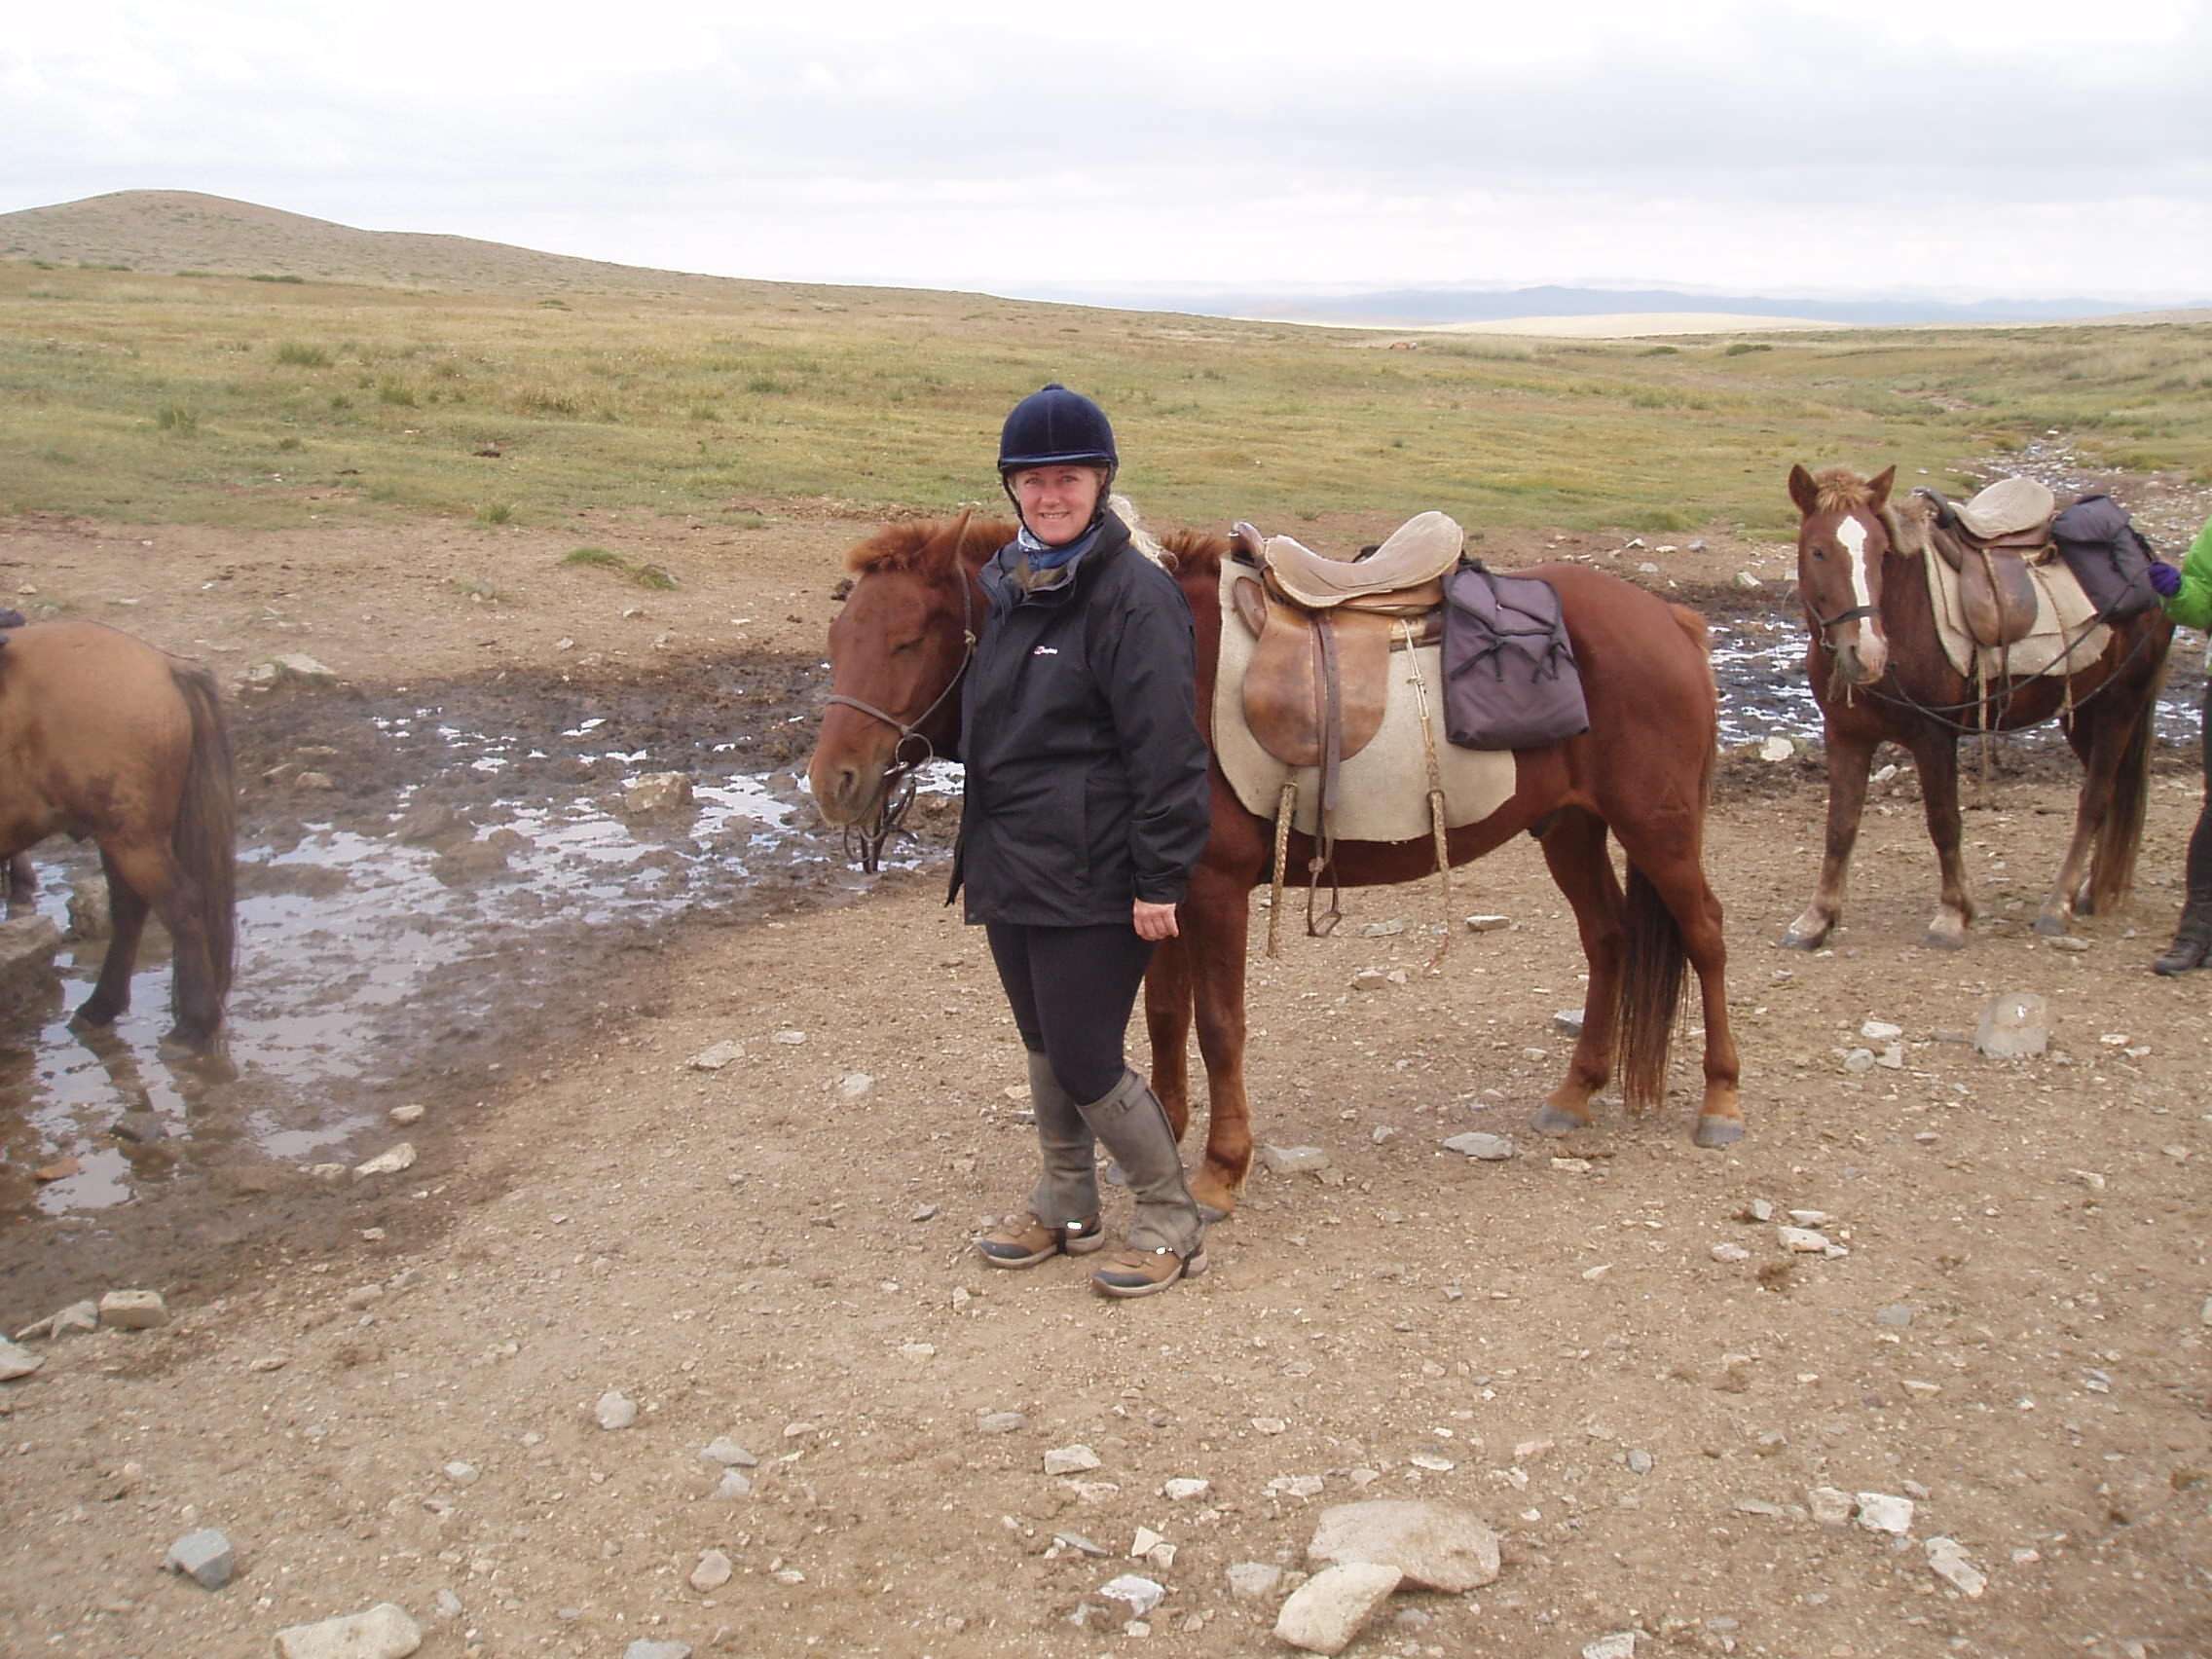 Chris sporting her Terrain boots in Mongolia